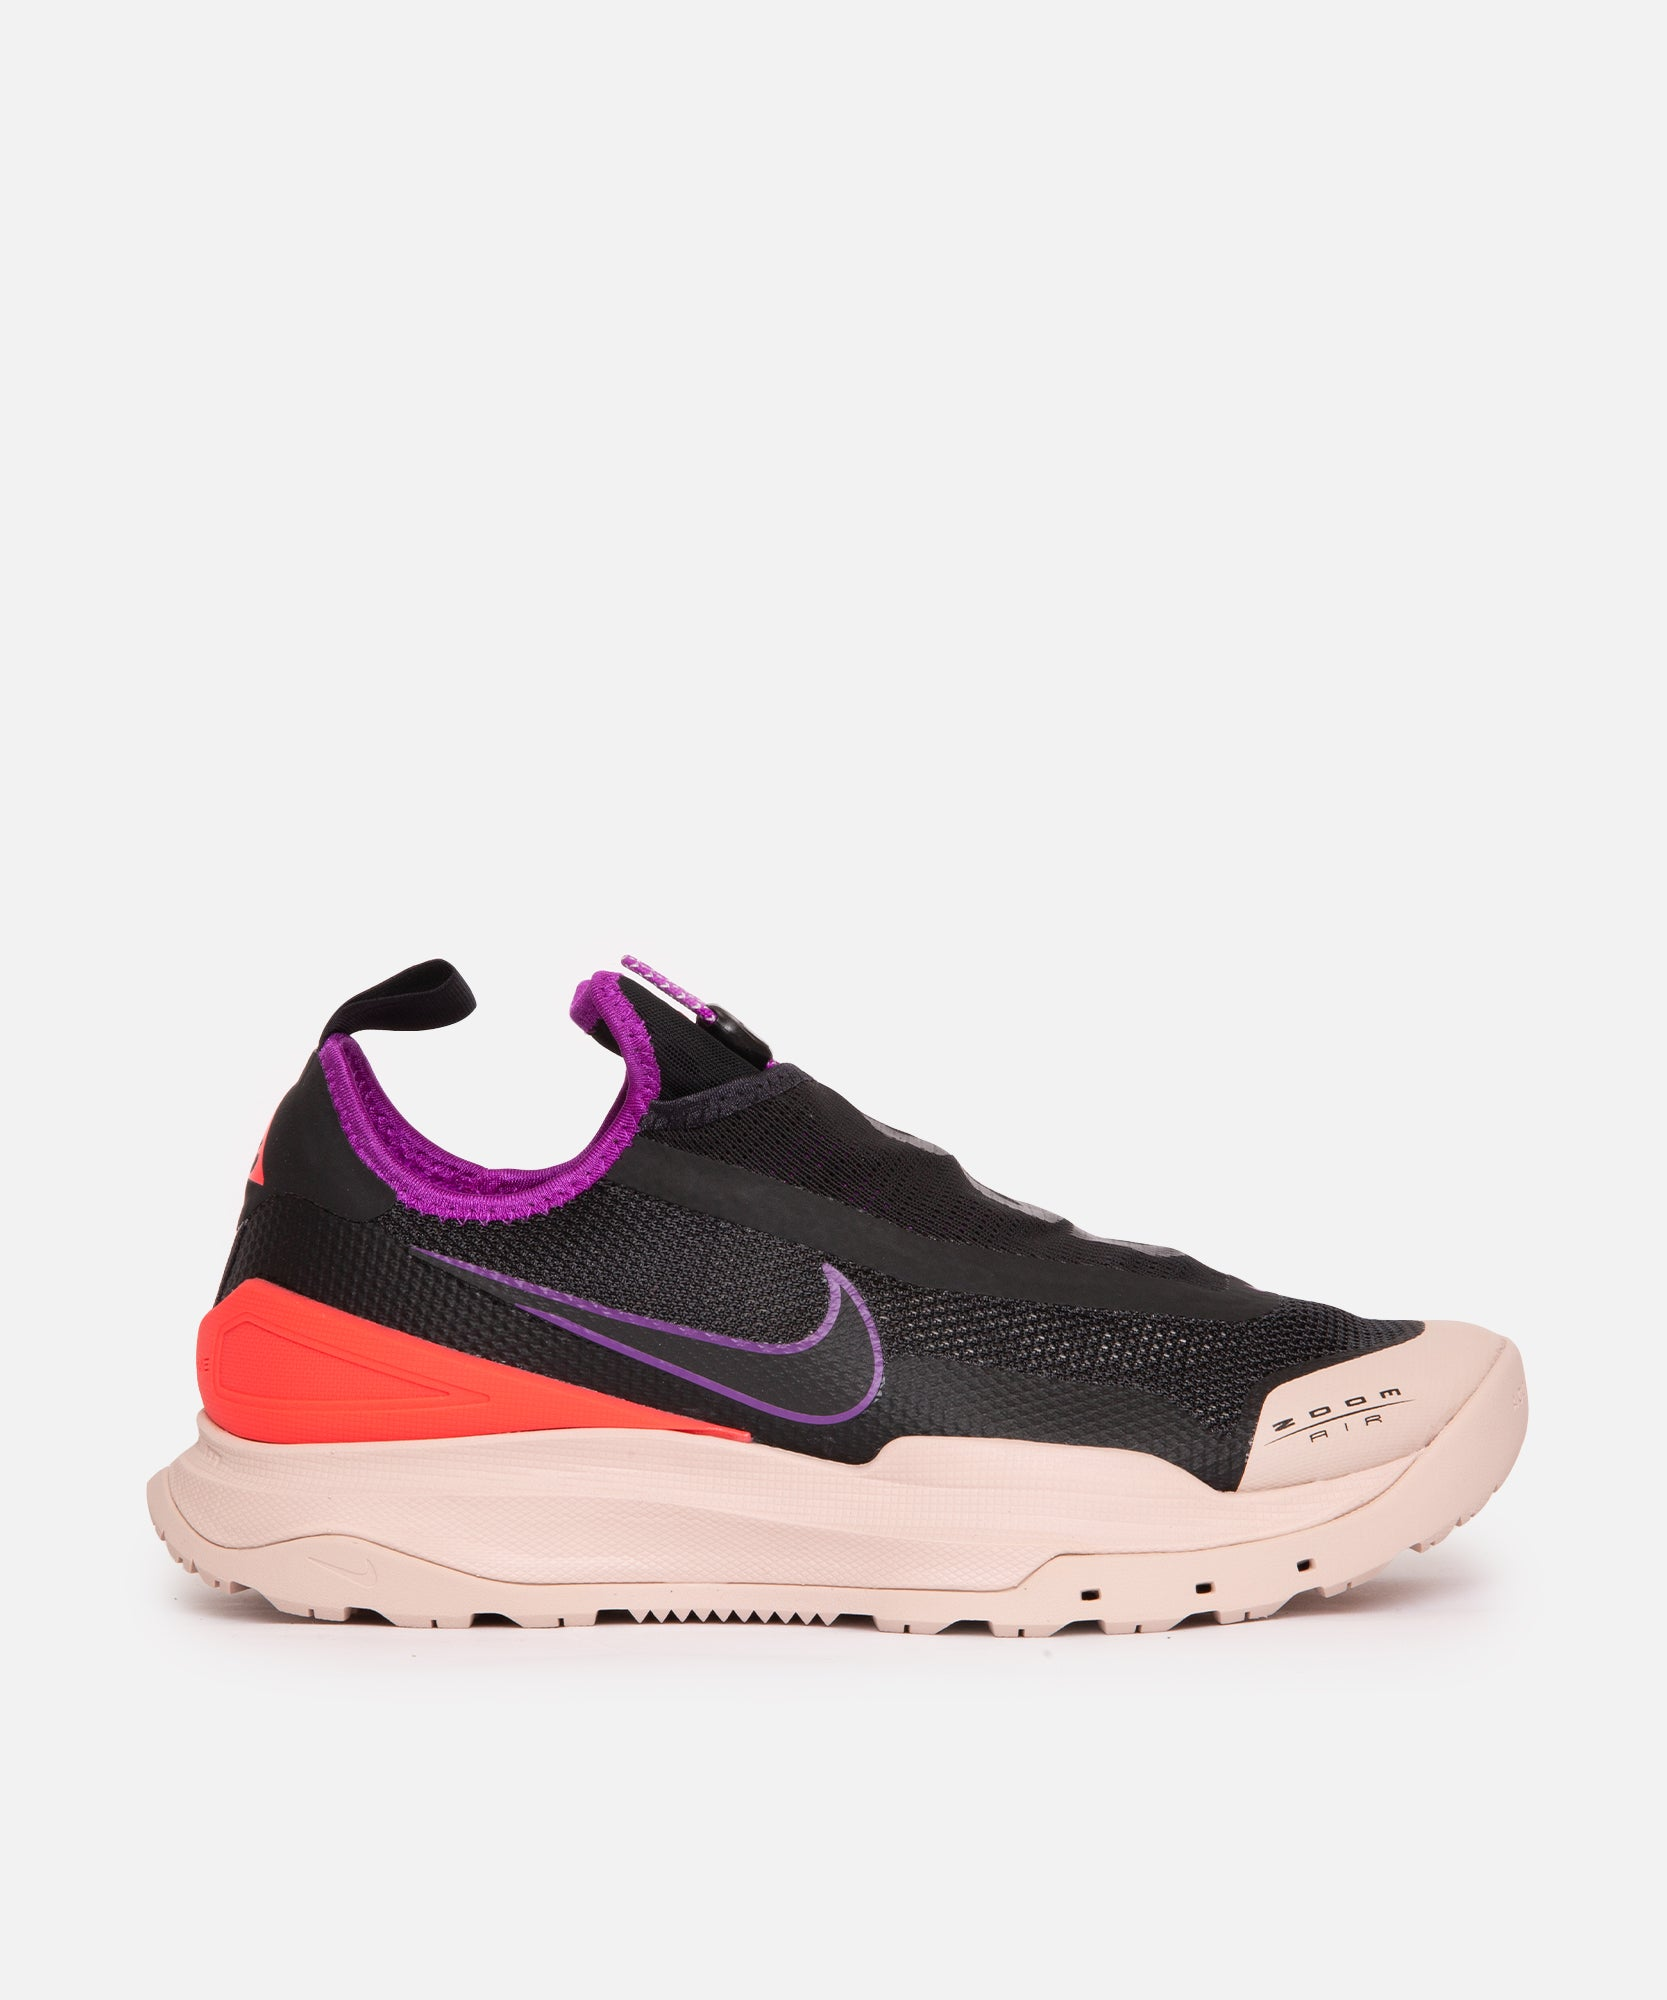 Nike ACG Zoom Air AO (Black/Black/Laser Crimson)